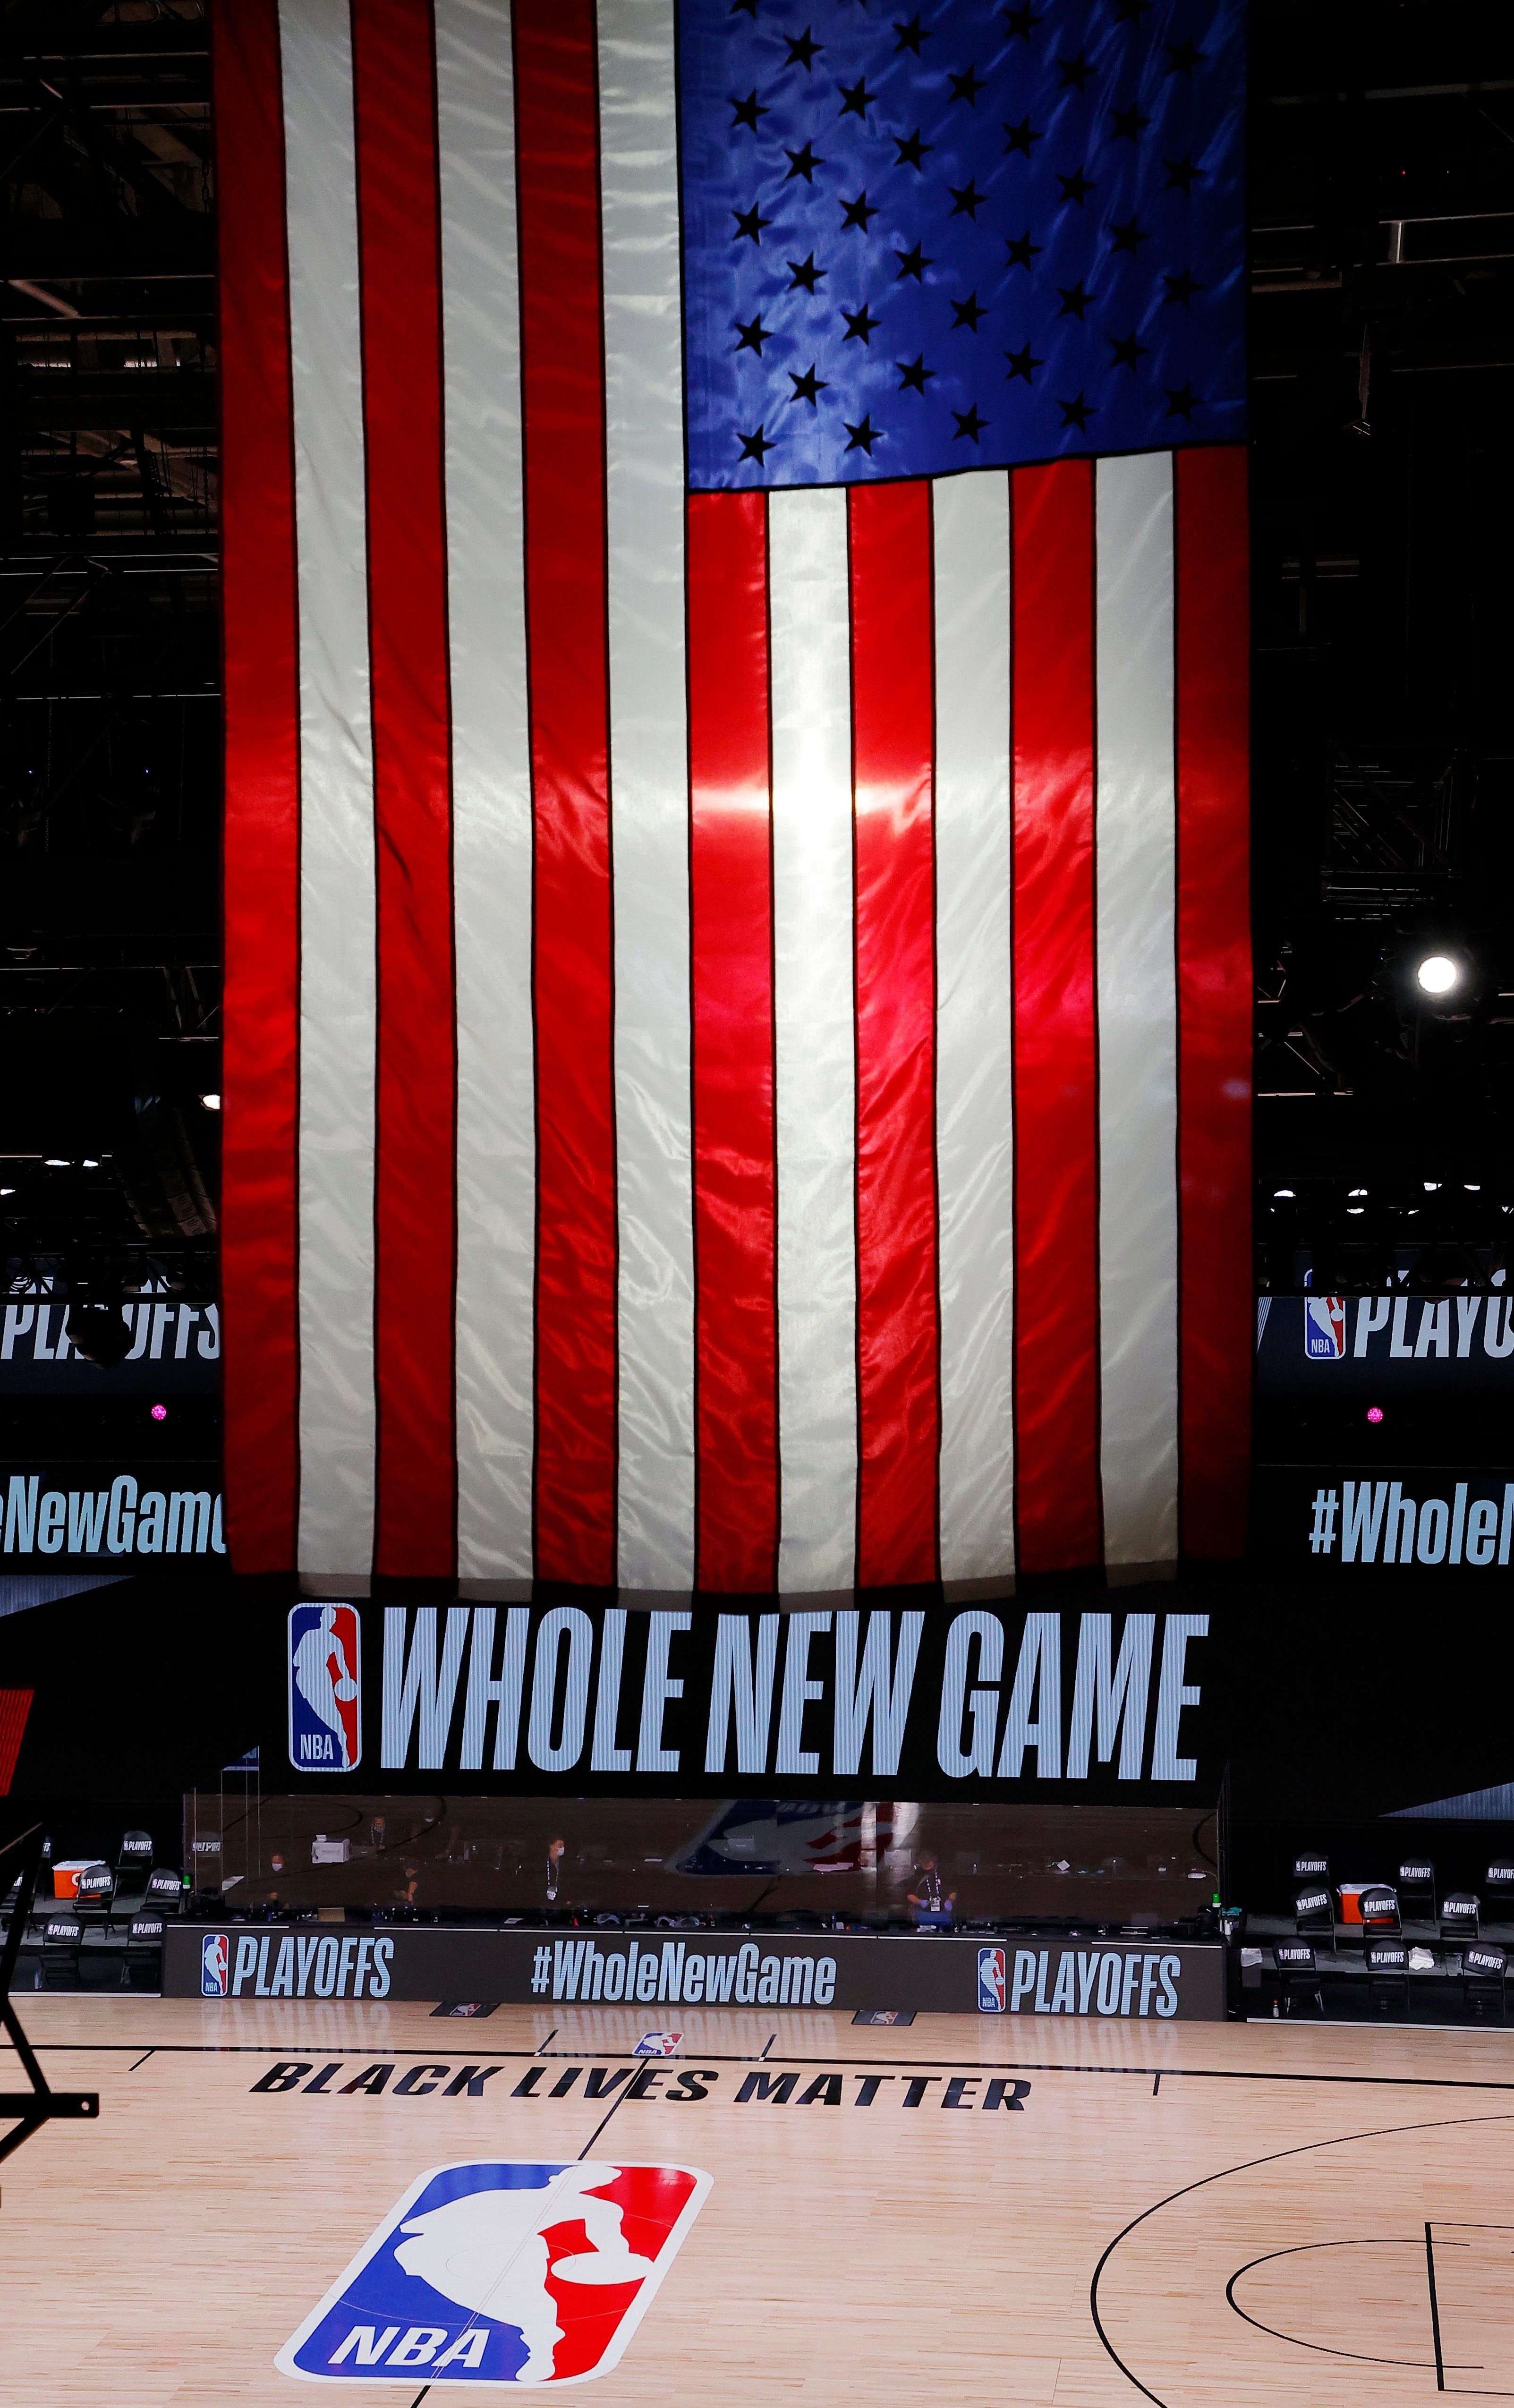 NBA, NBPA agree to resume playoffs Saturday and outline